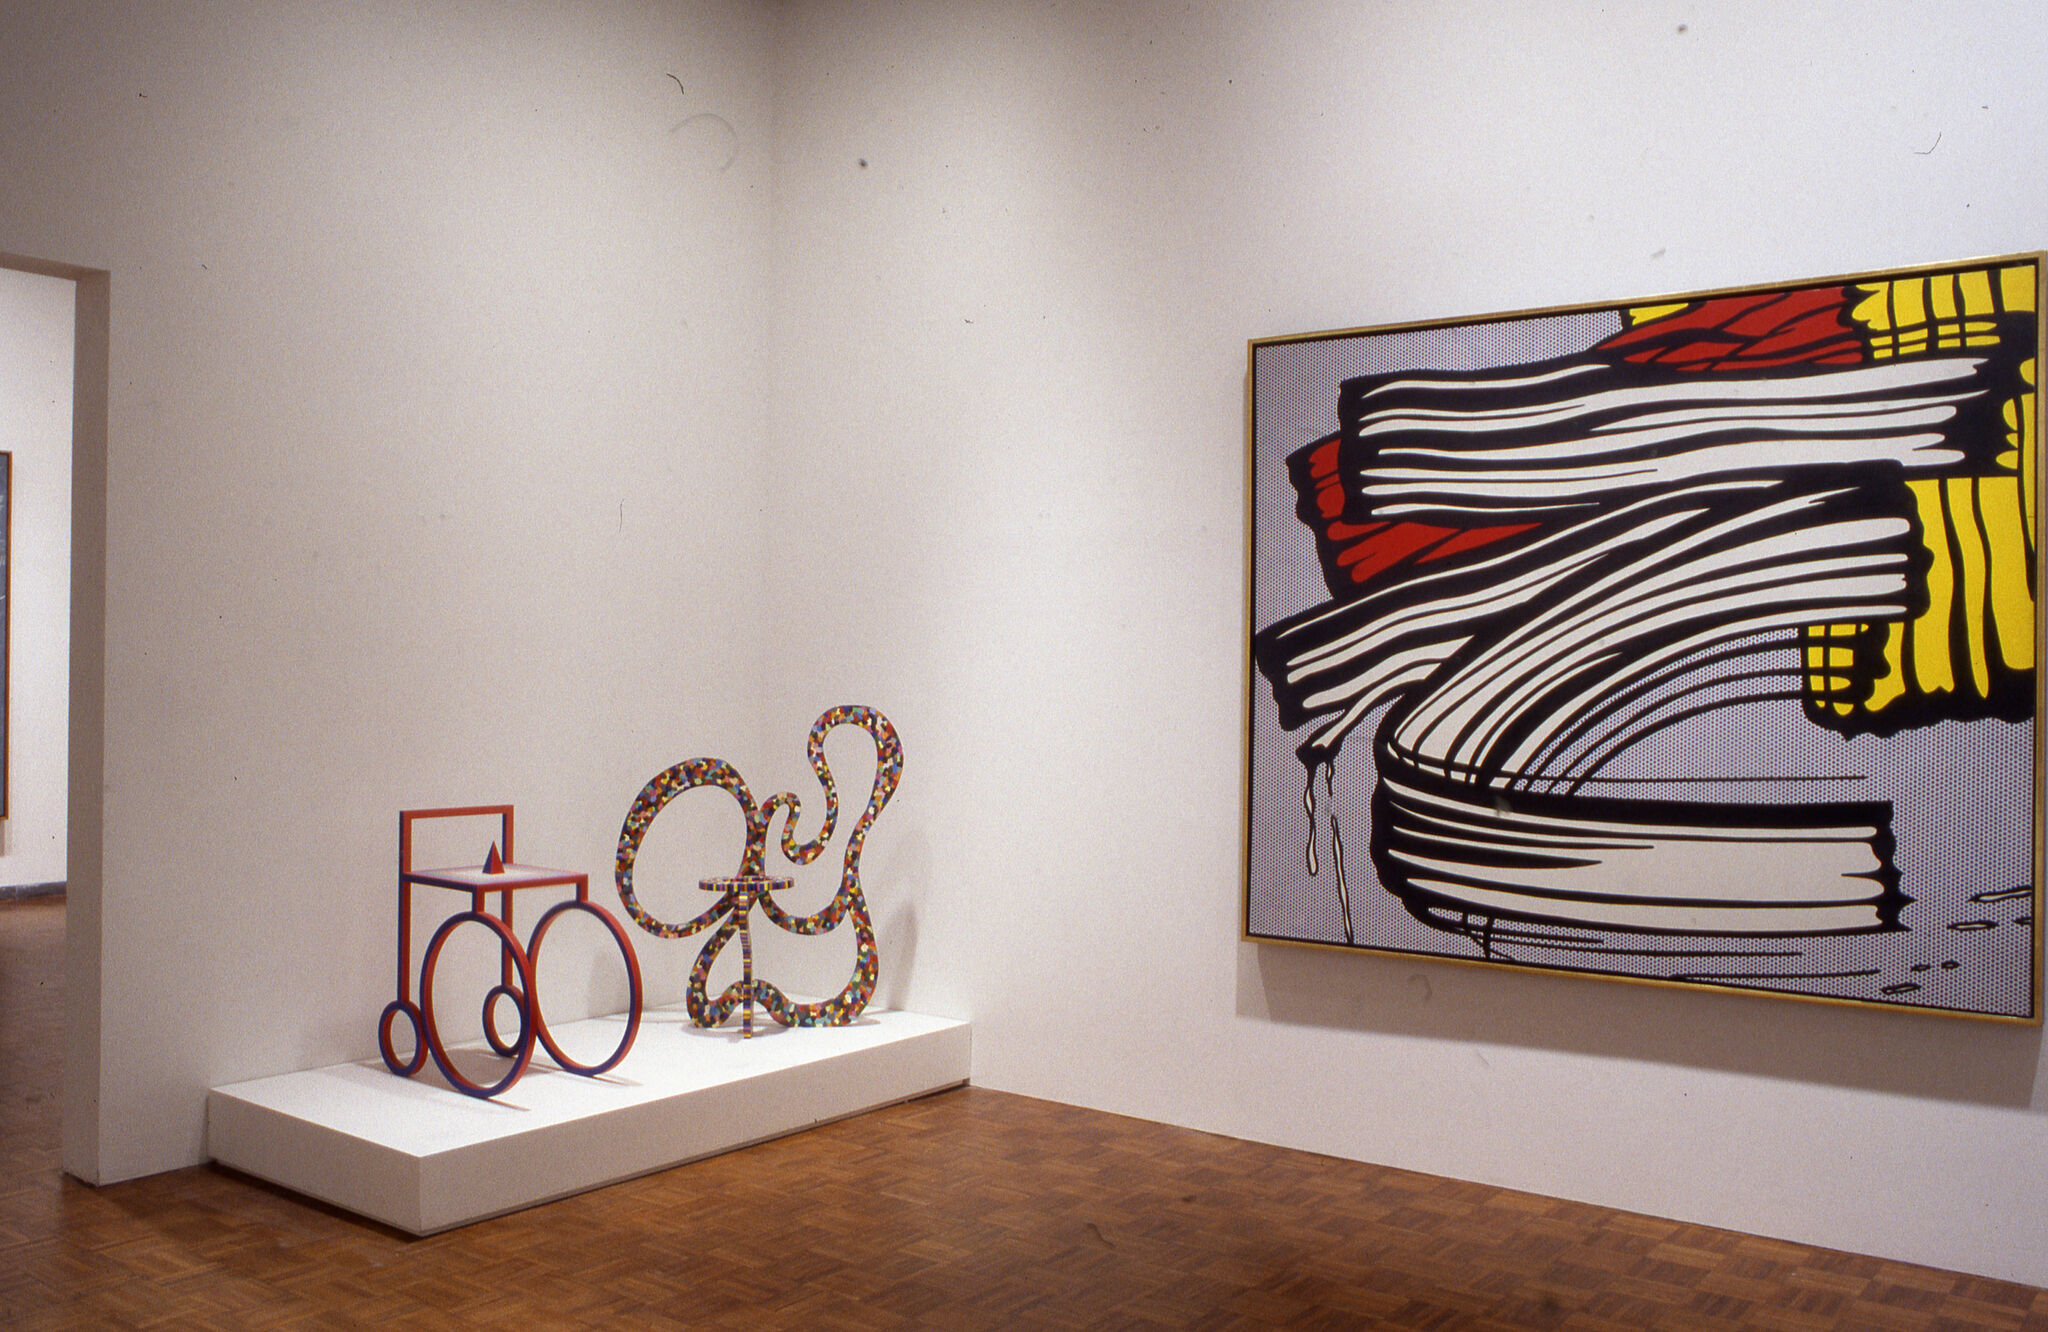 An abstract painting displayed alongside two sculptures in a gallery.